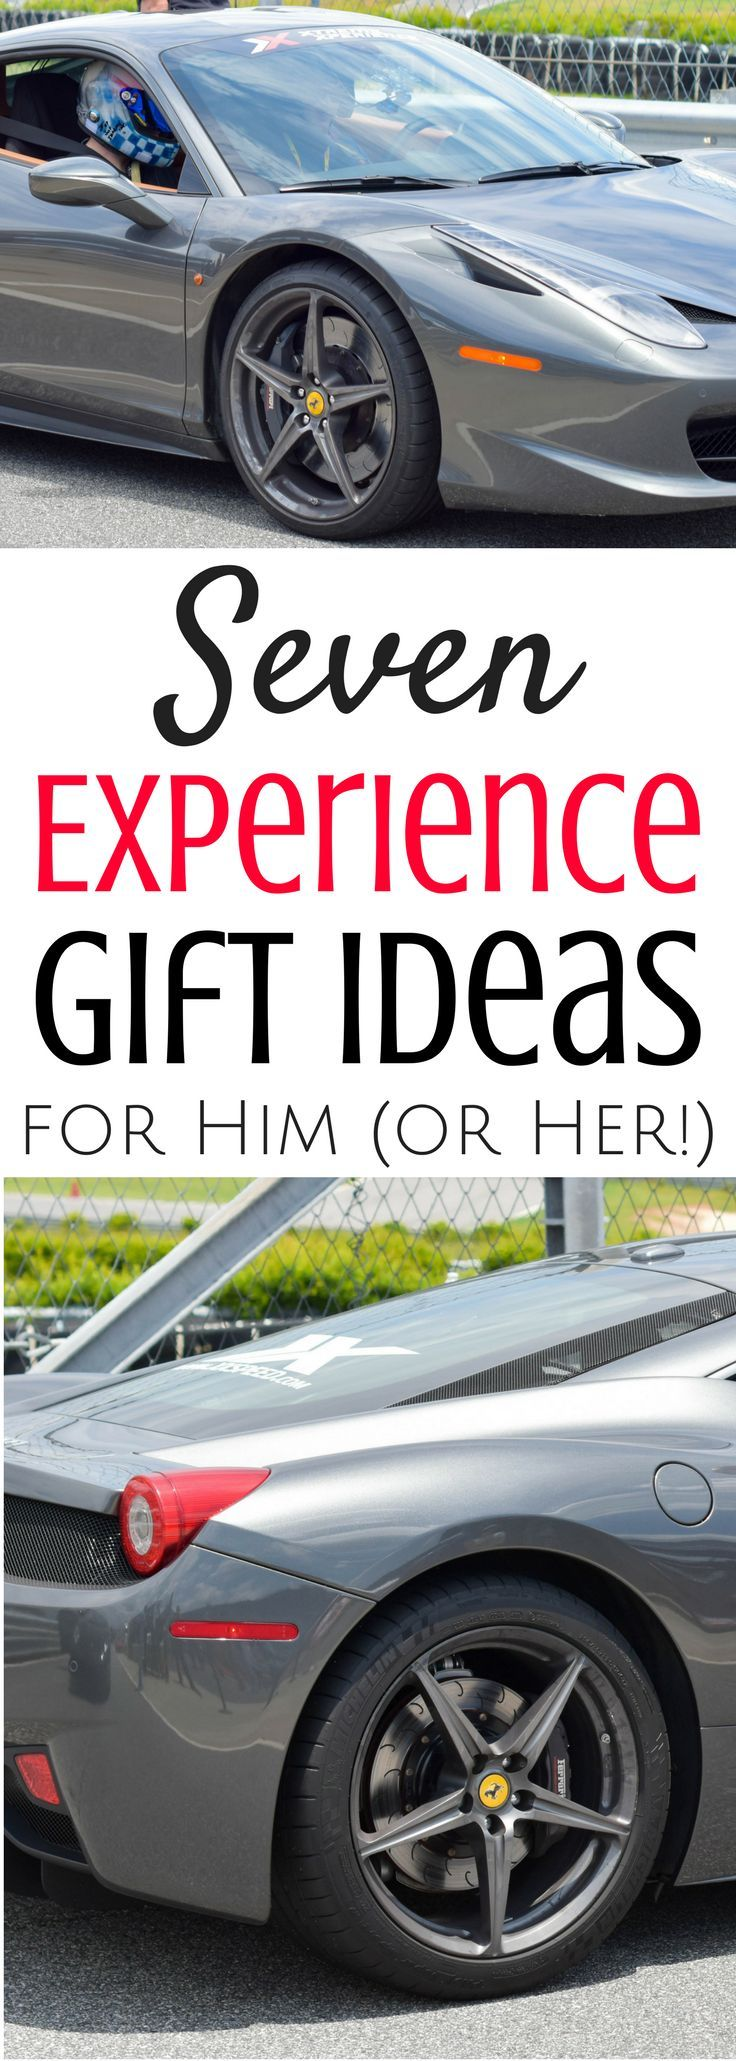 Seven Experience Gift Ideas For Him Or Her